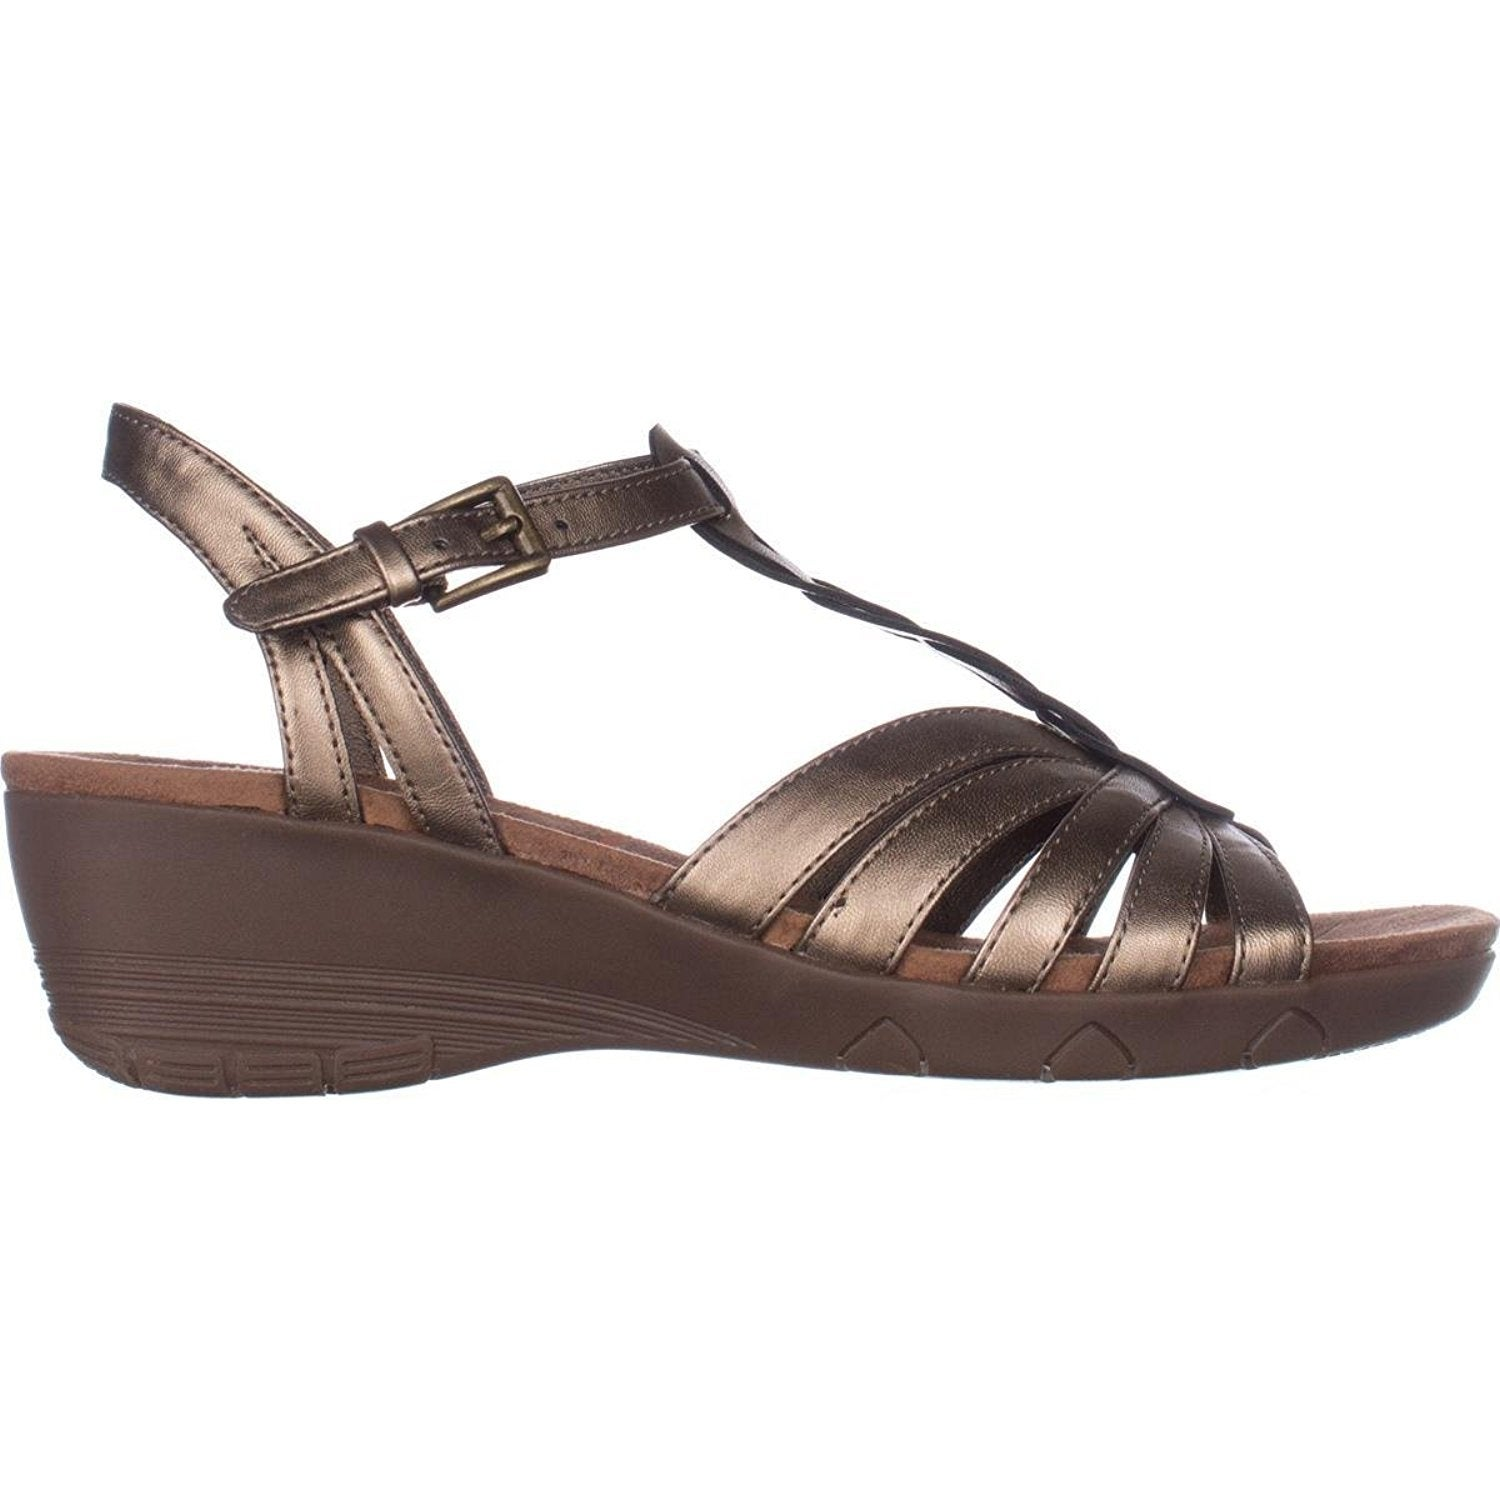 ee5acc53ebb Shop Bare Traps Honora Wedge Sandals - Free Shipping On Orders Over  45 -  Overstock - 17637434